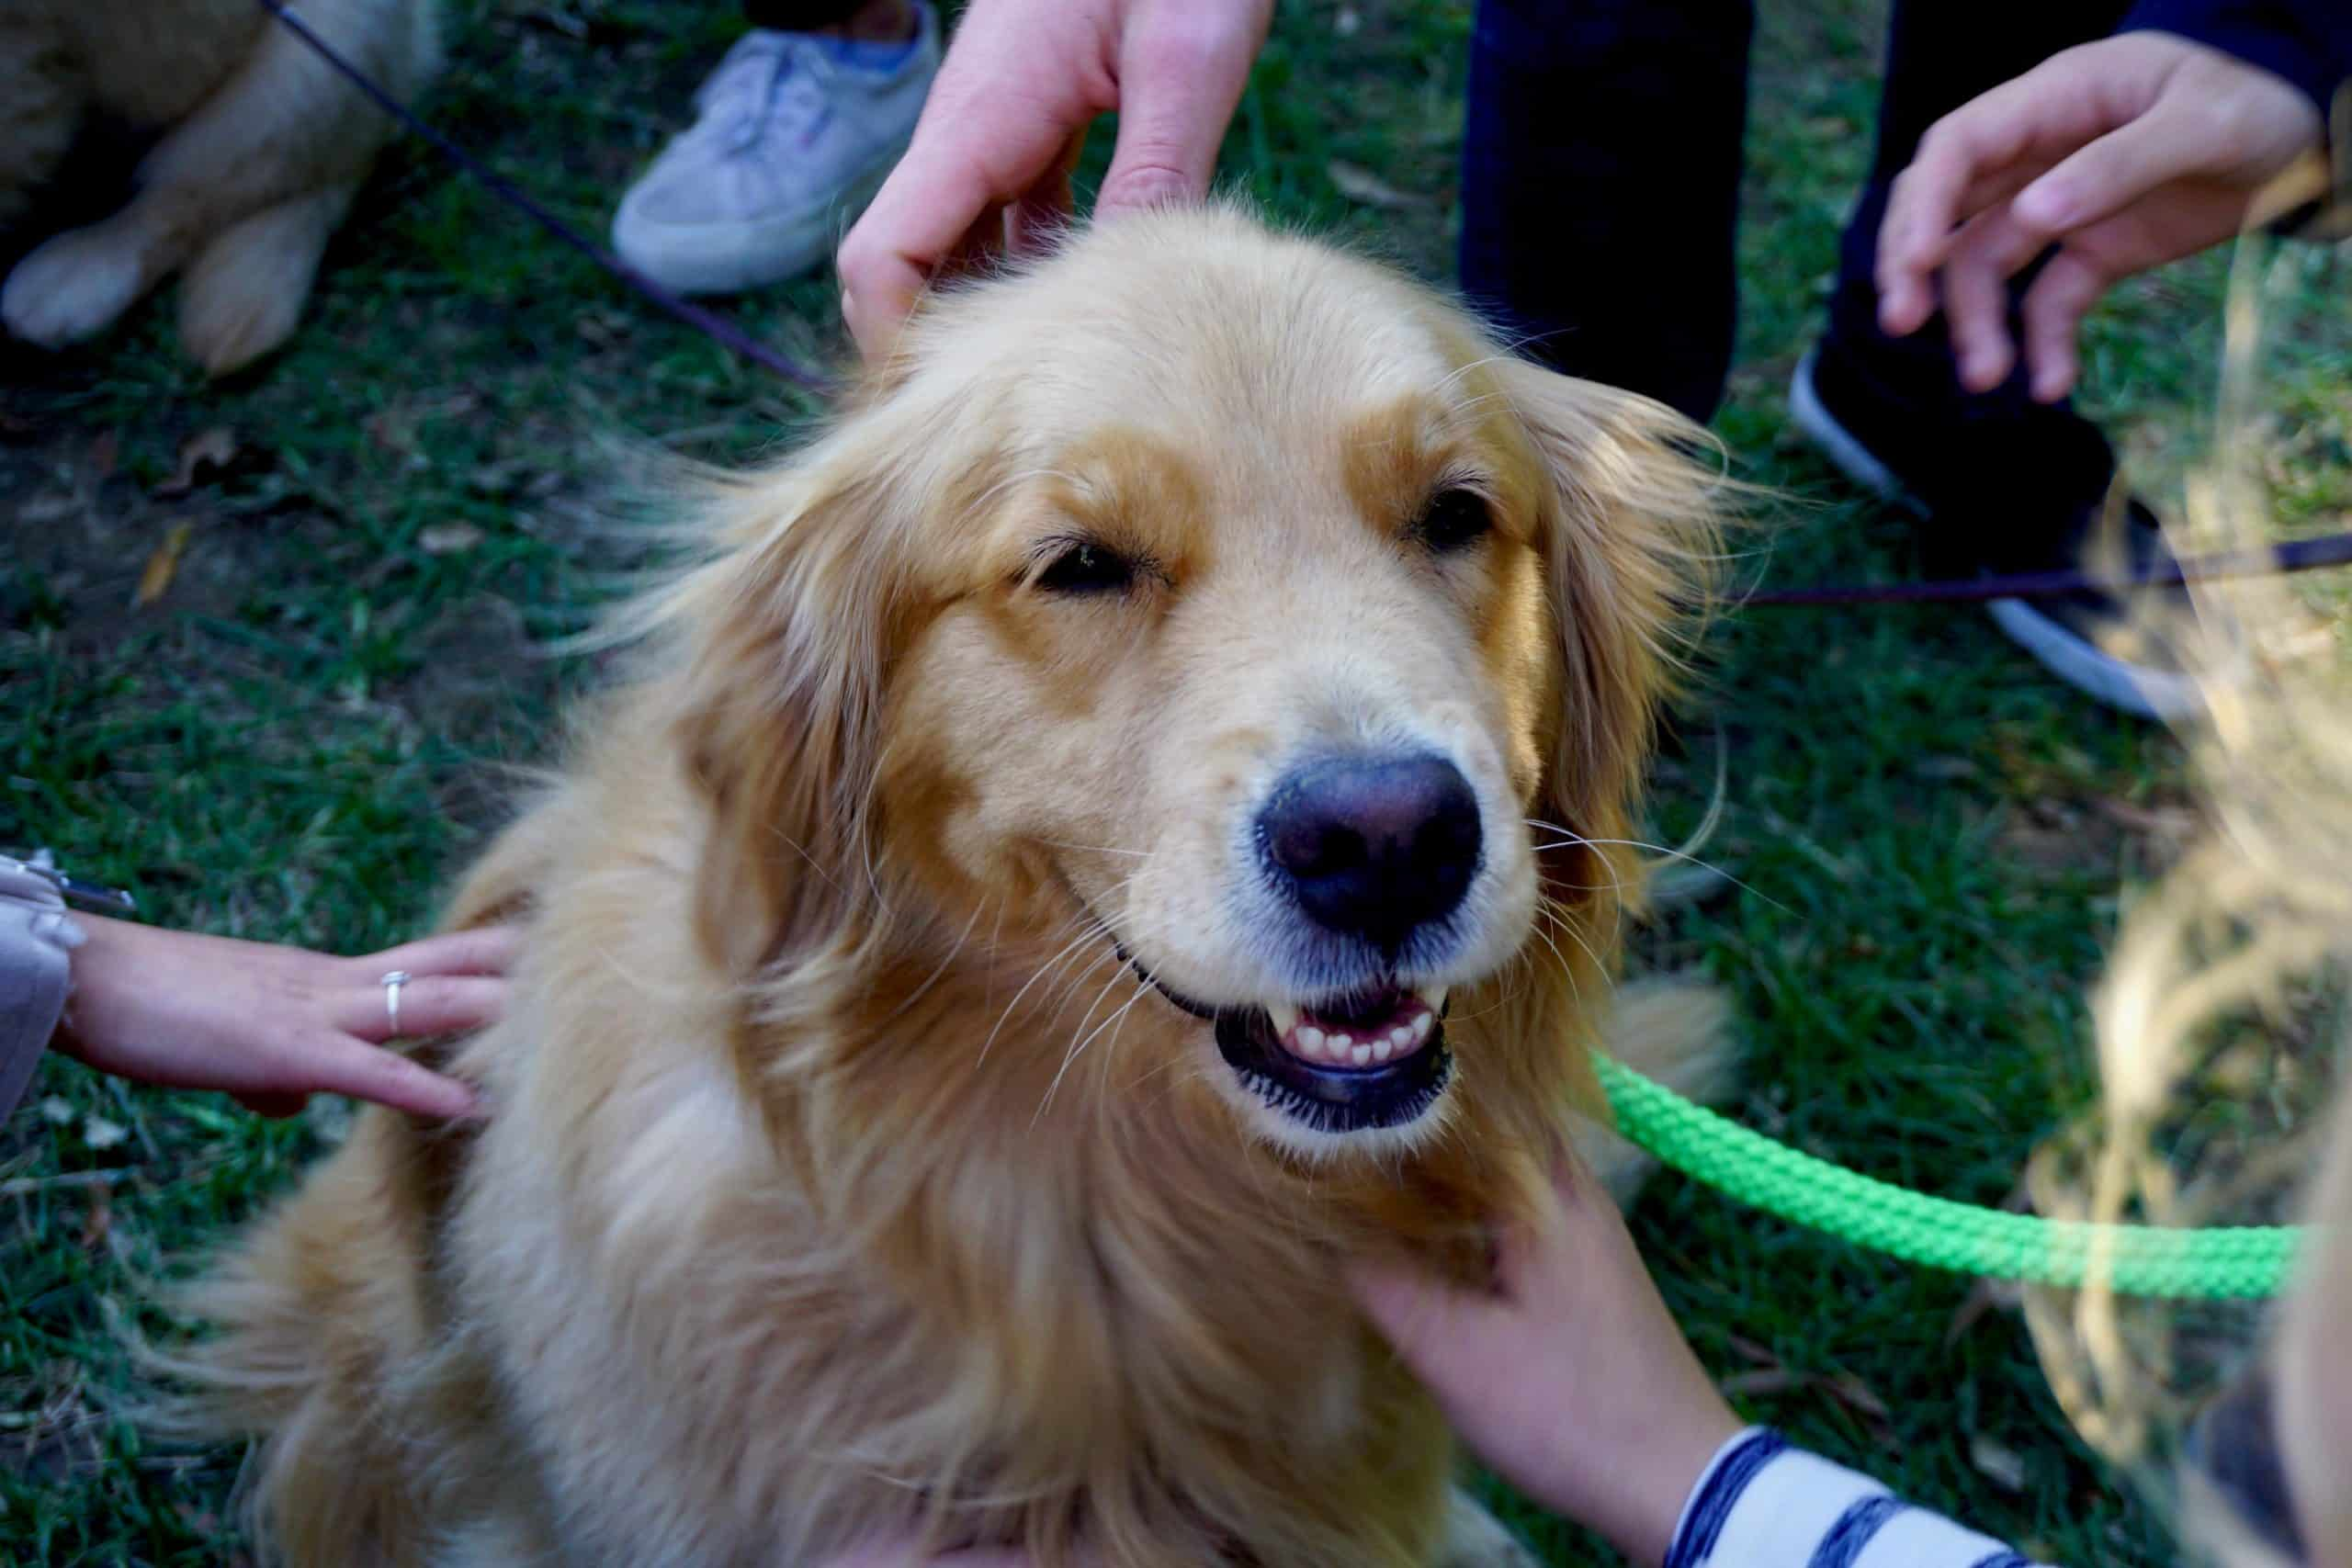 Golden Retriever getting pet by four people.